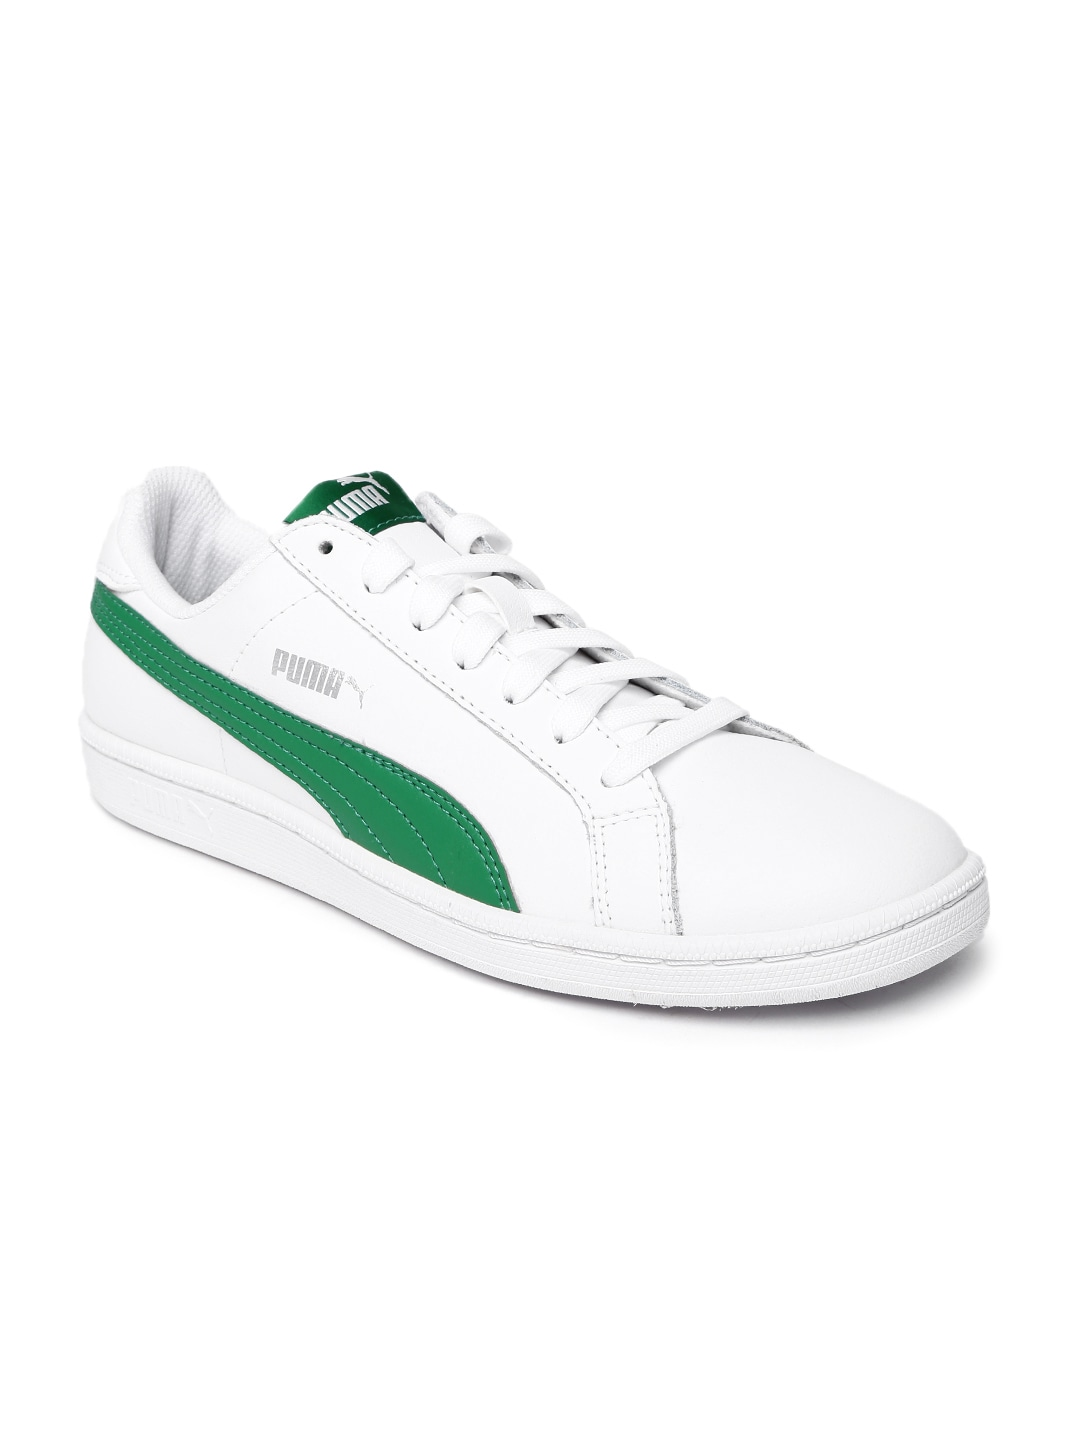 Buy Puma Men White Smash L IDP Sneakers - Casual Shoes for Men ... dd38ed595